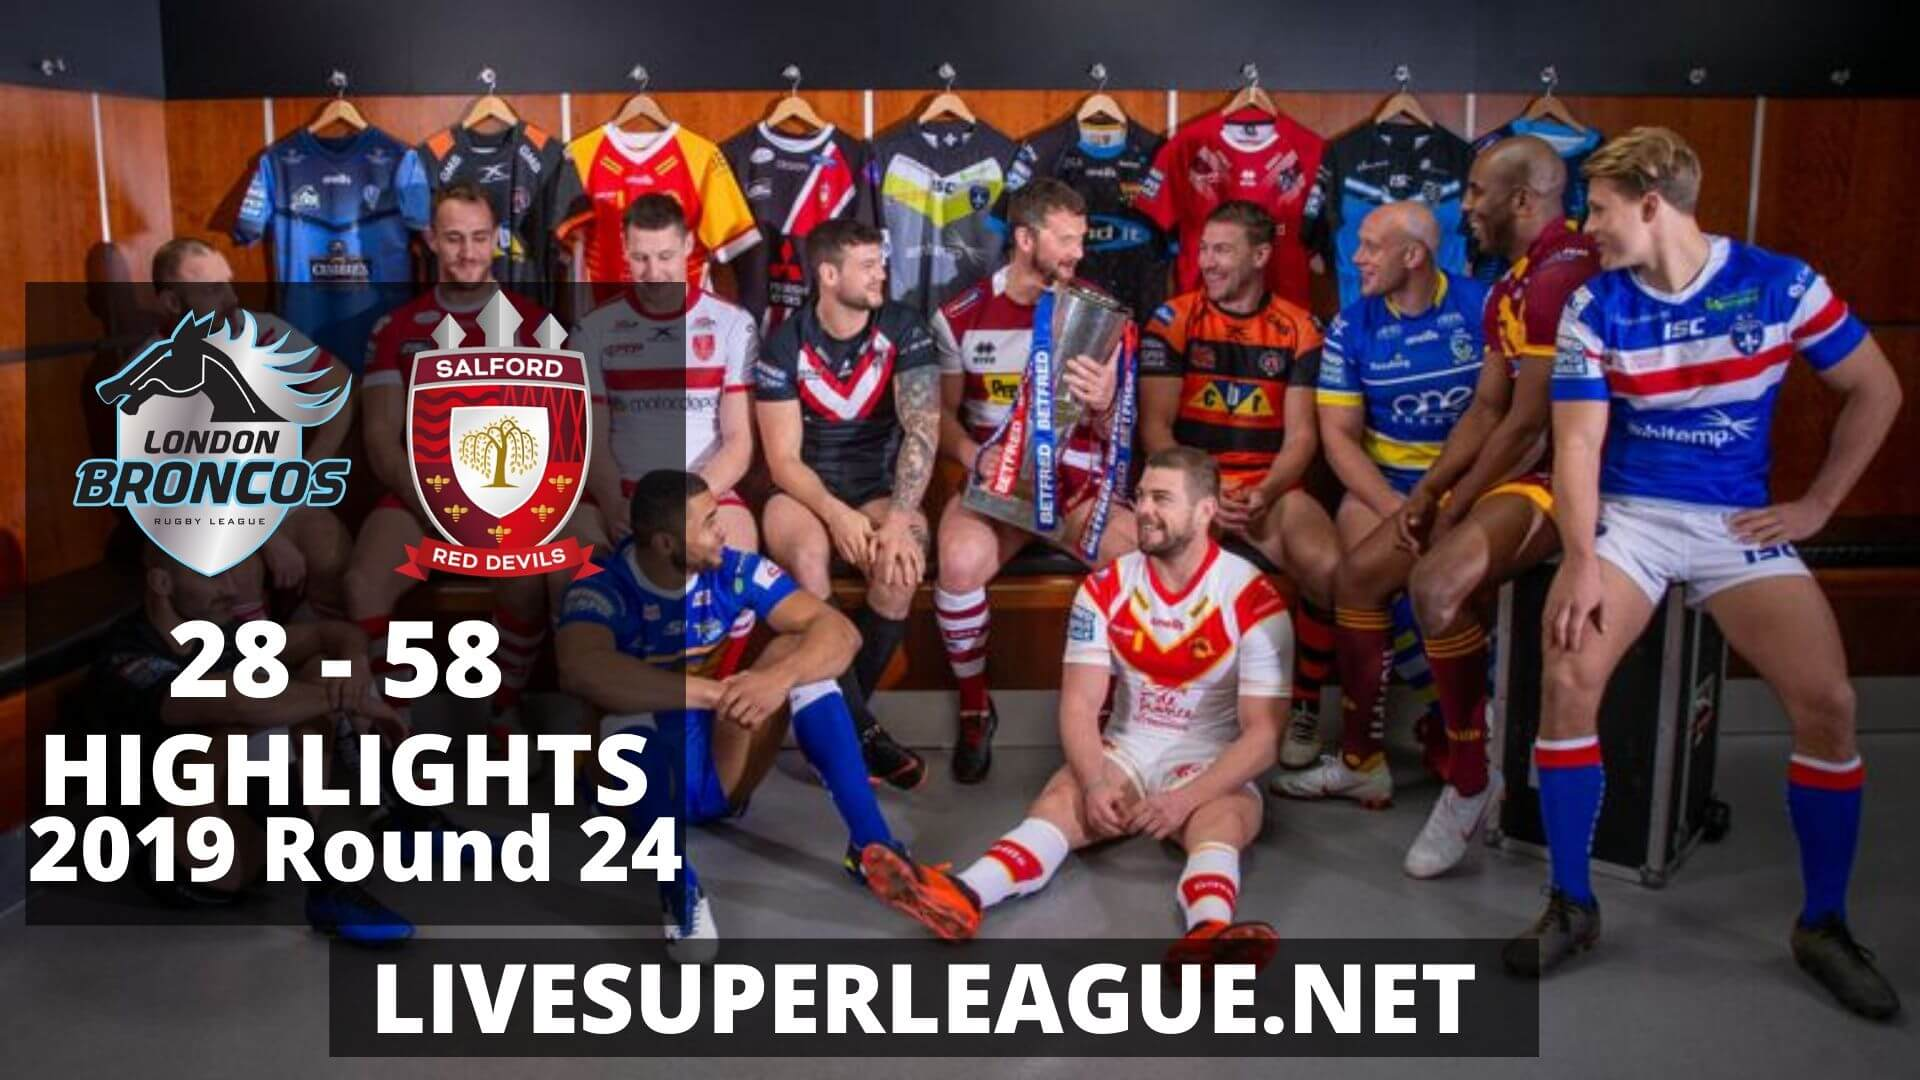 London Broncos Vs Salford Red Devils Highlights 2019 Round 24